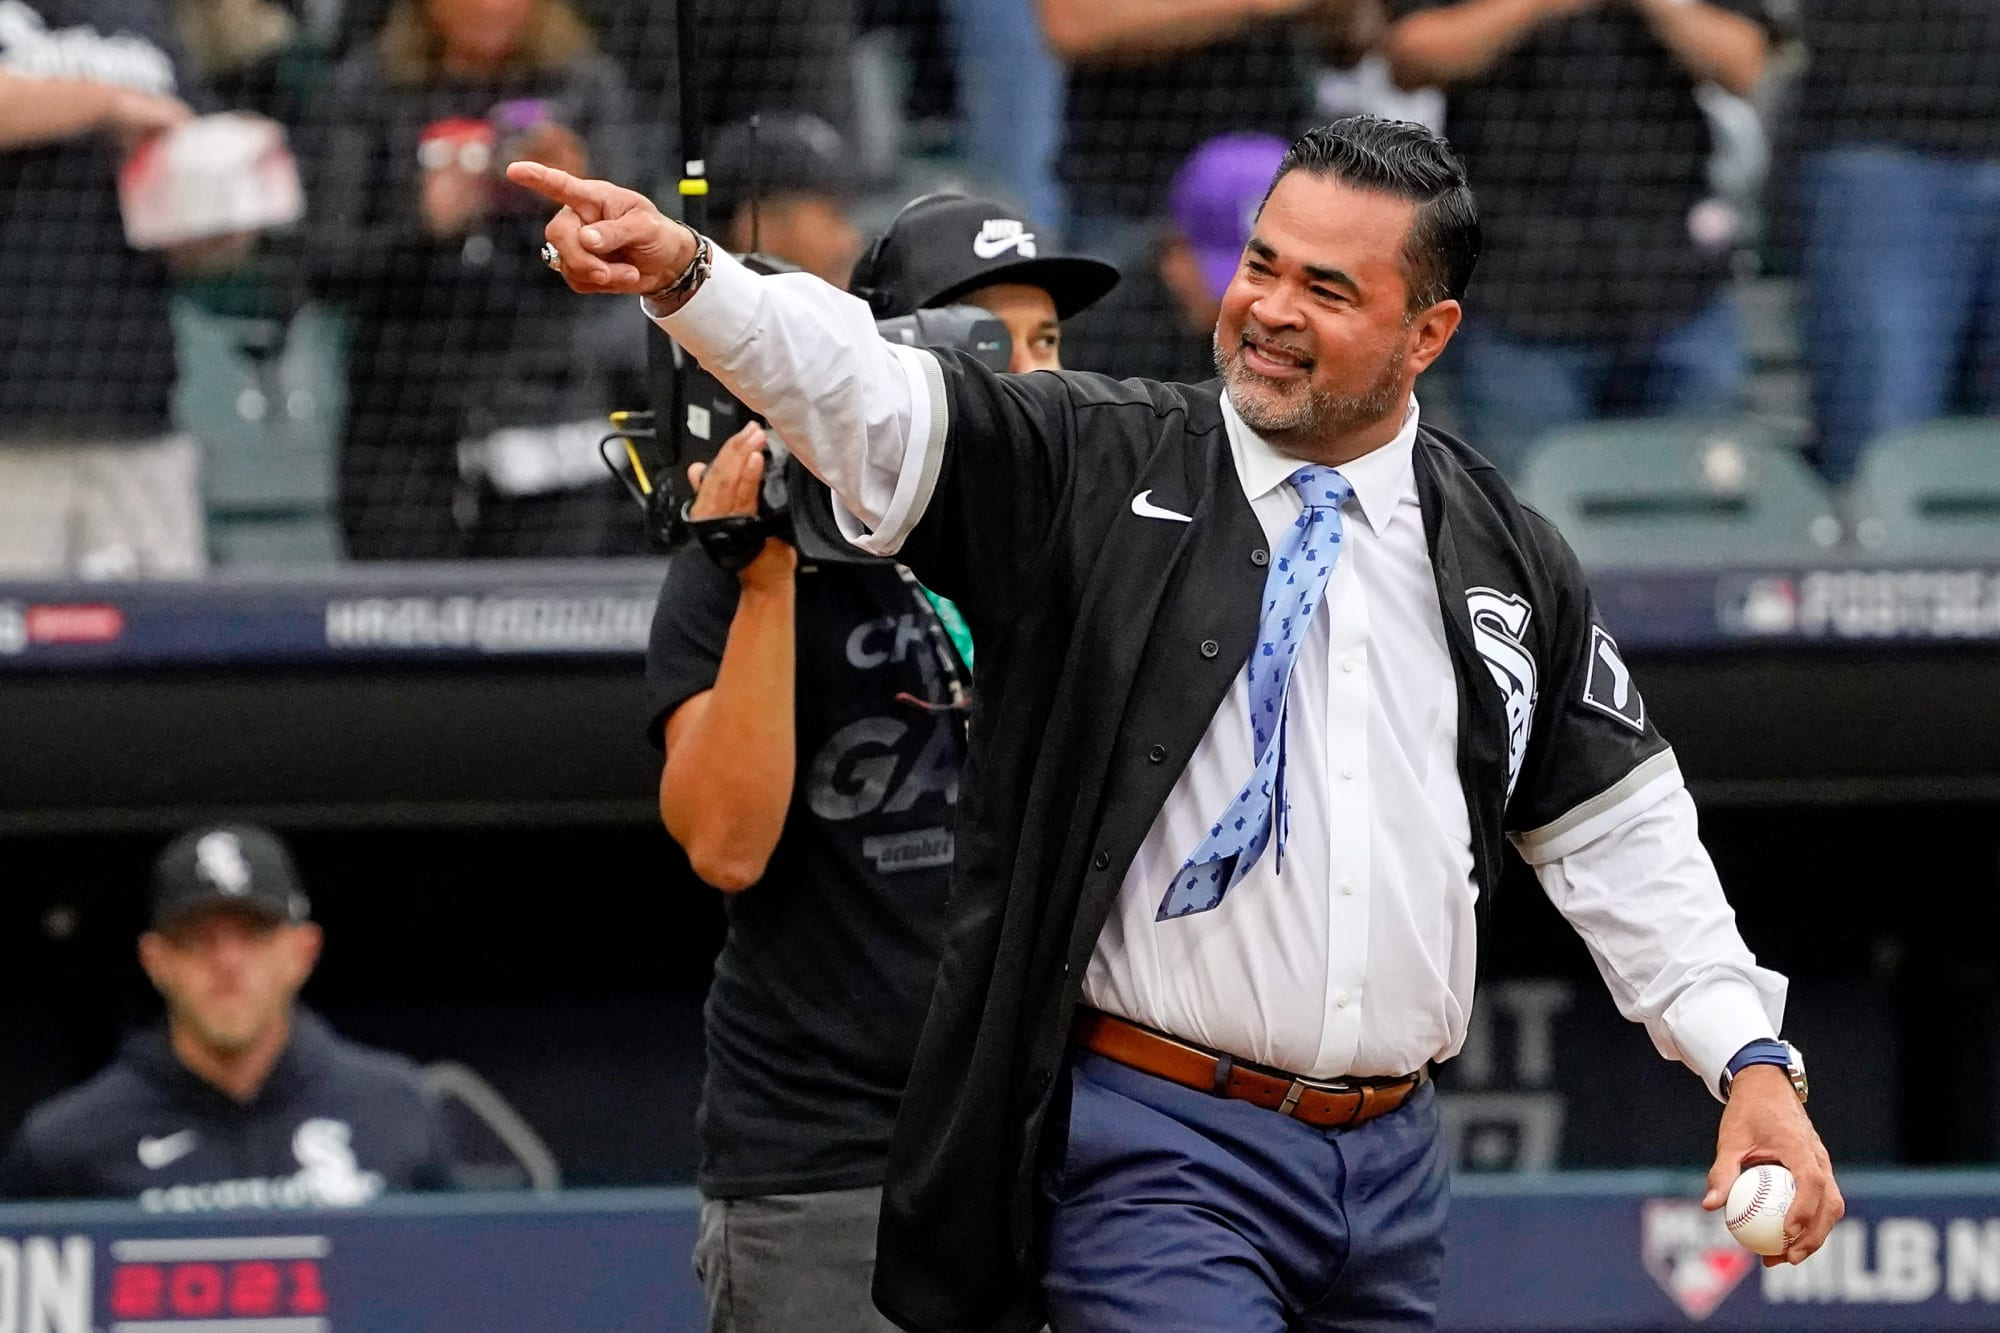 San Diego Padres interview surprising candidate for manager